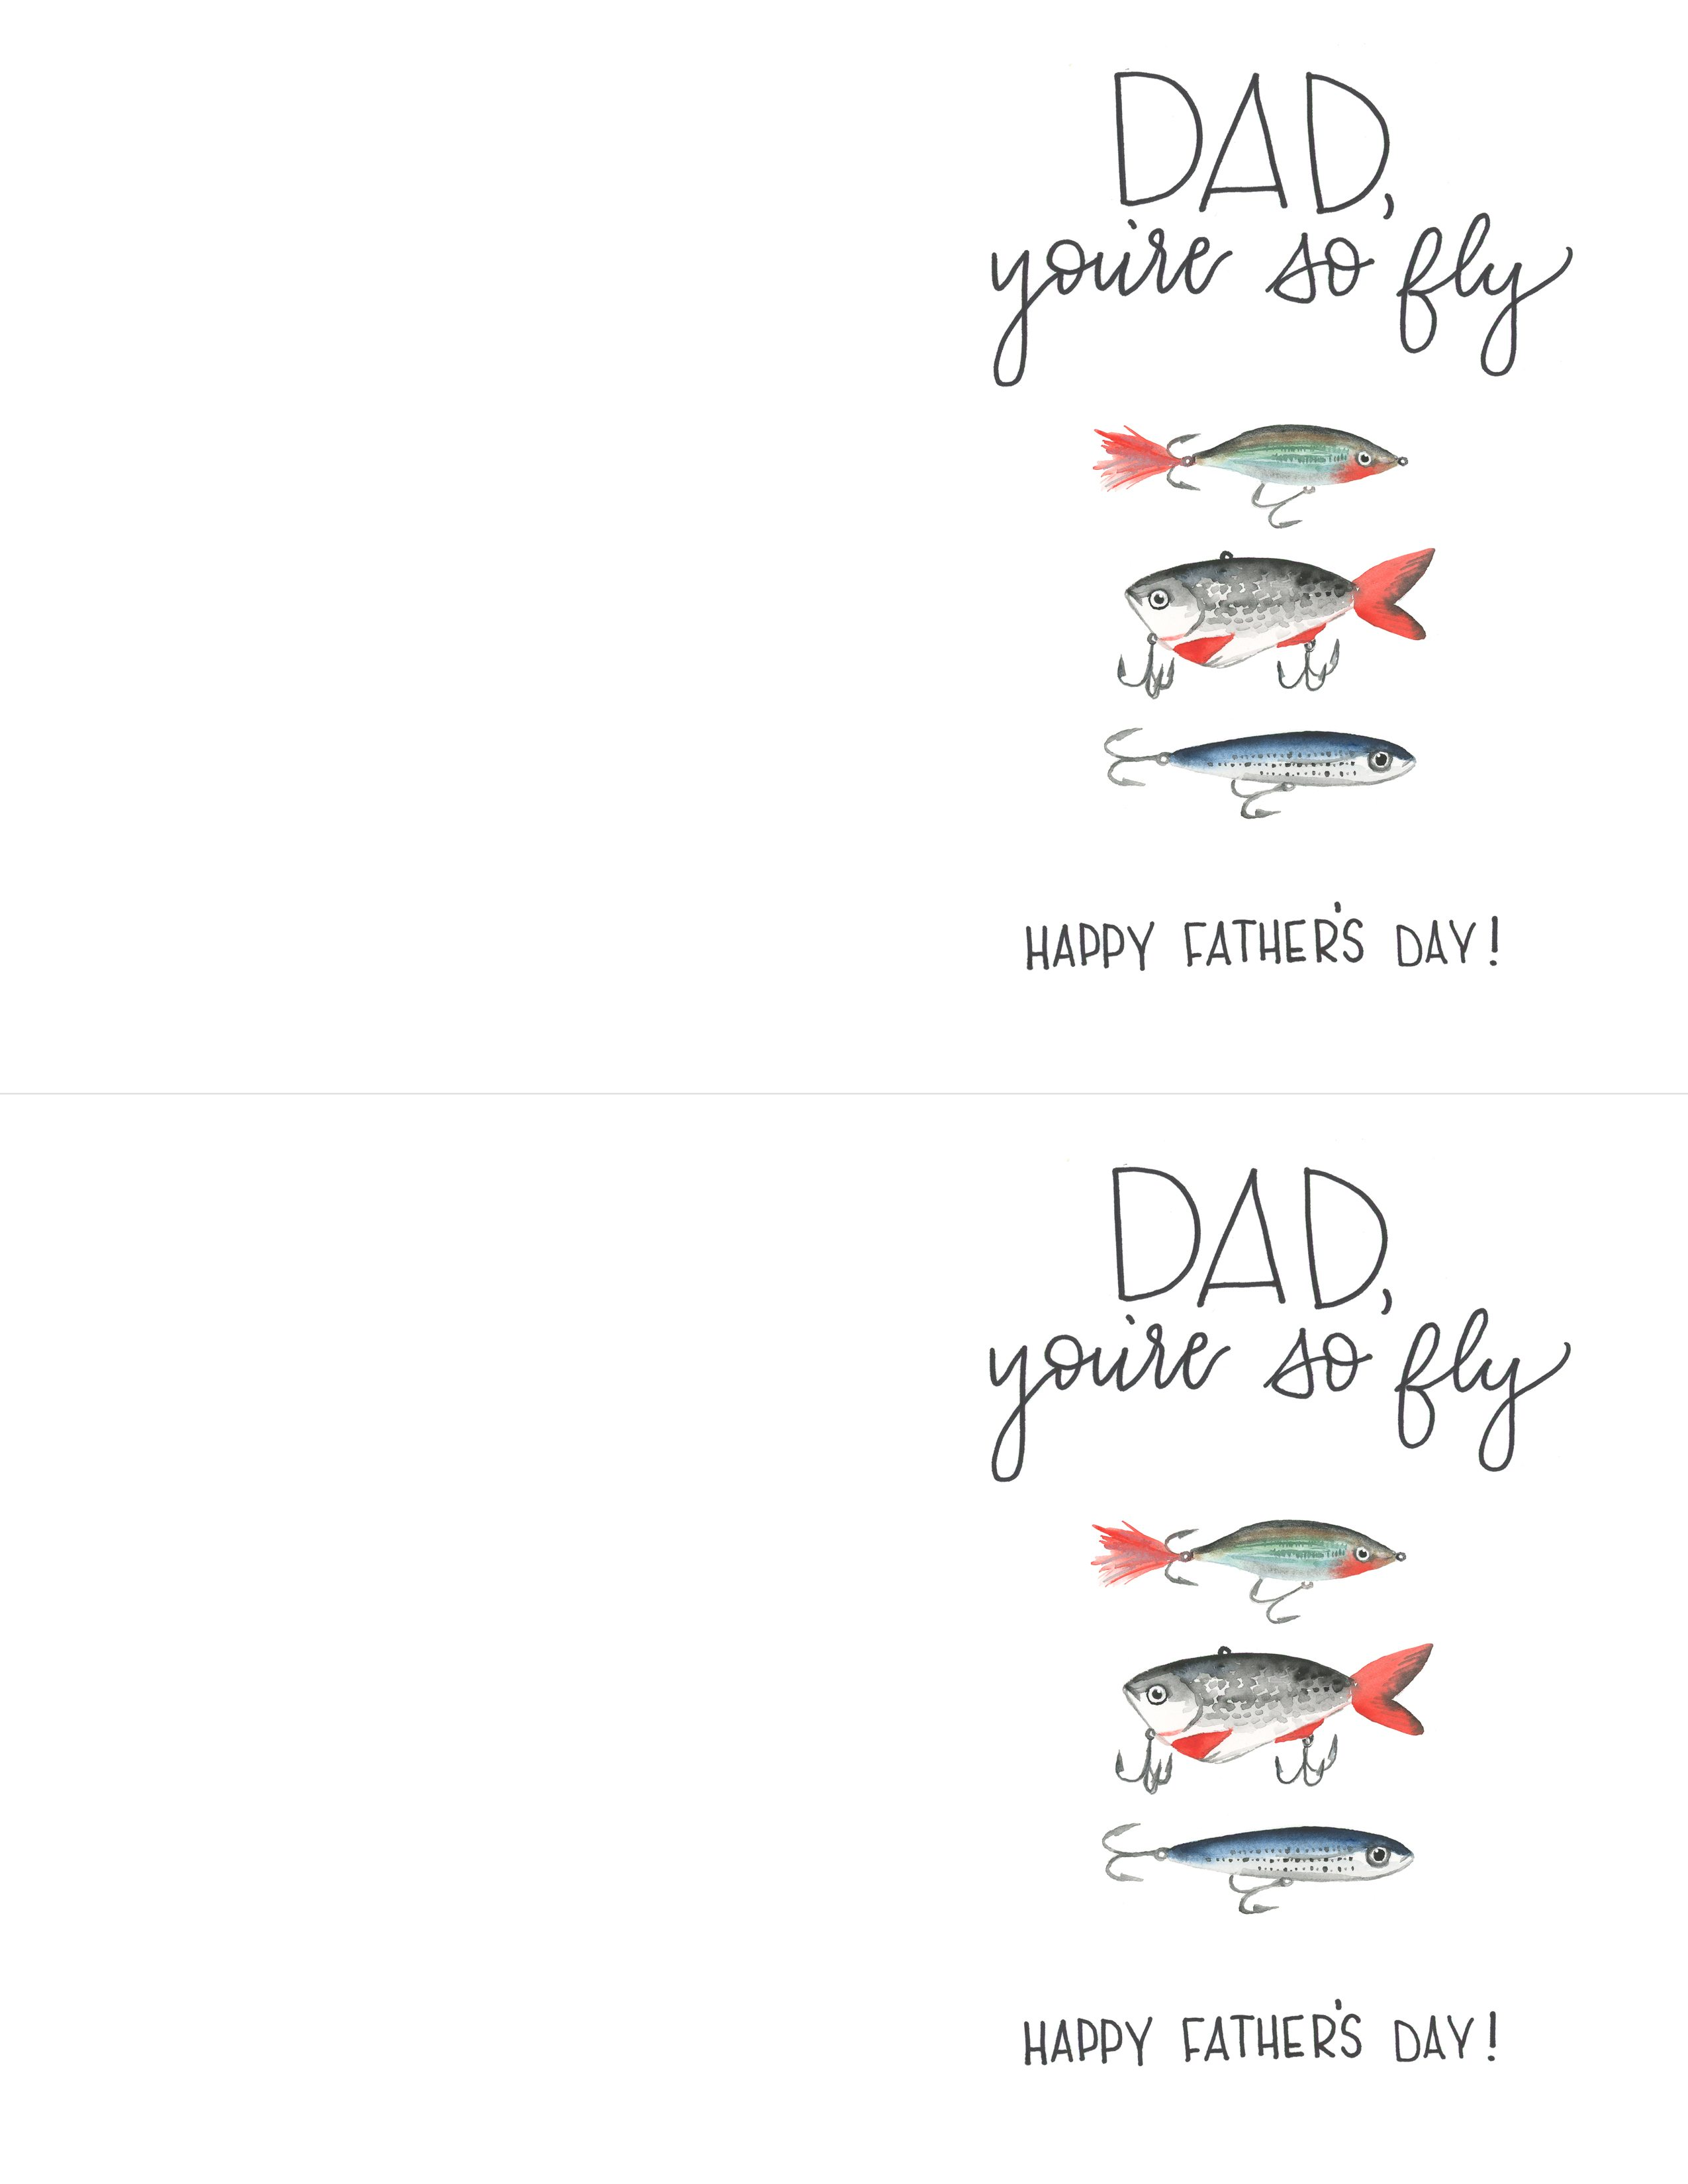 photo about Fathers Day Printable Cards called Fathers Working day Absolutely free Watercolor Fisherman Printable - TINSELBOX